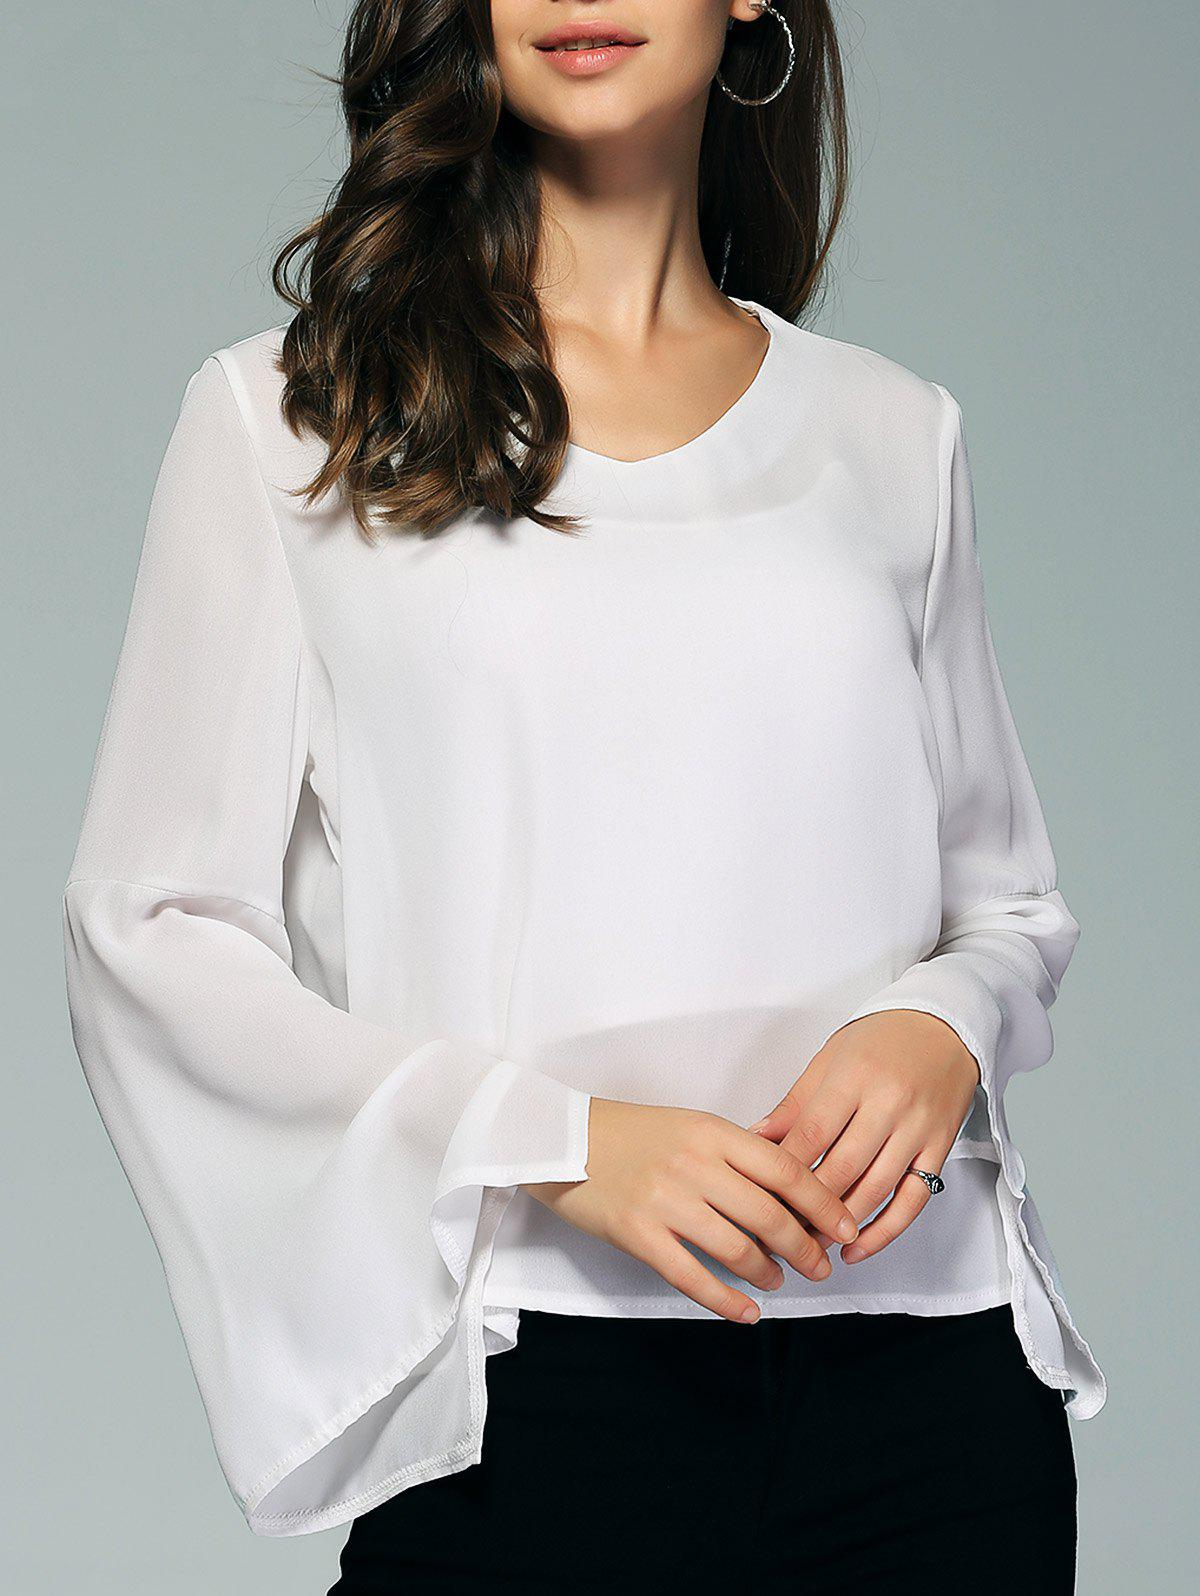 Concise Flare Sleeve Pure Color Blouse For Women